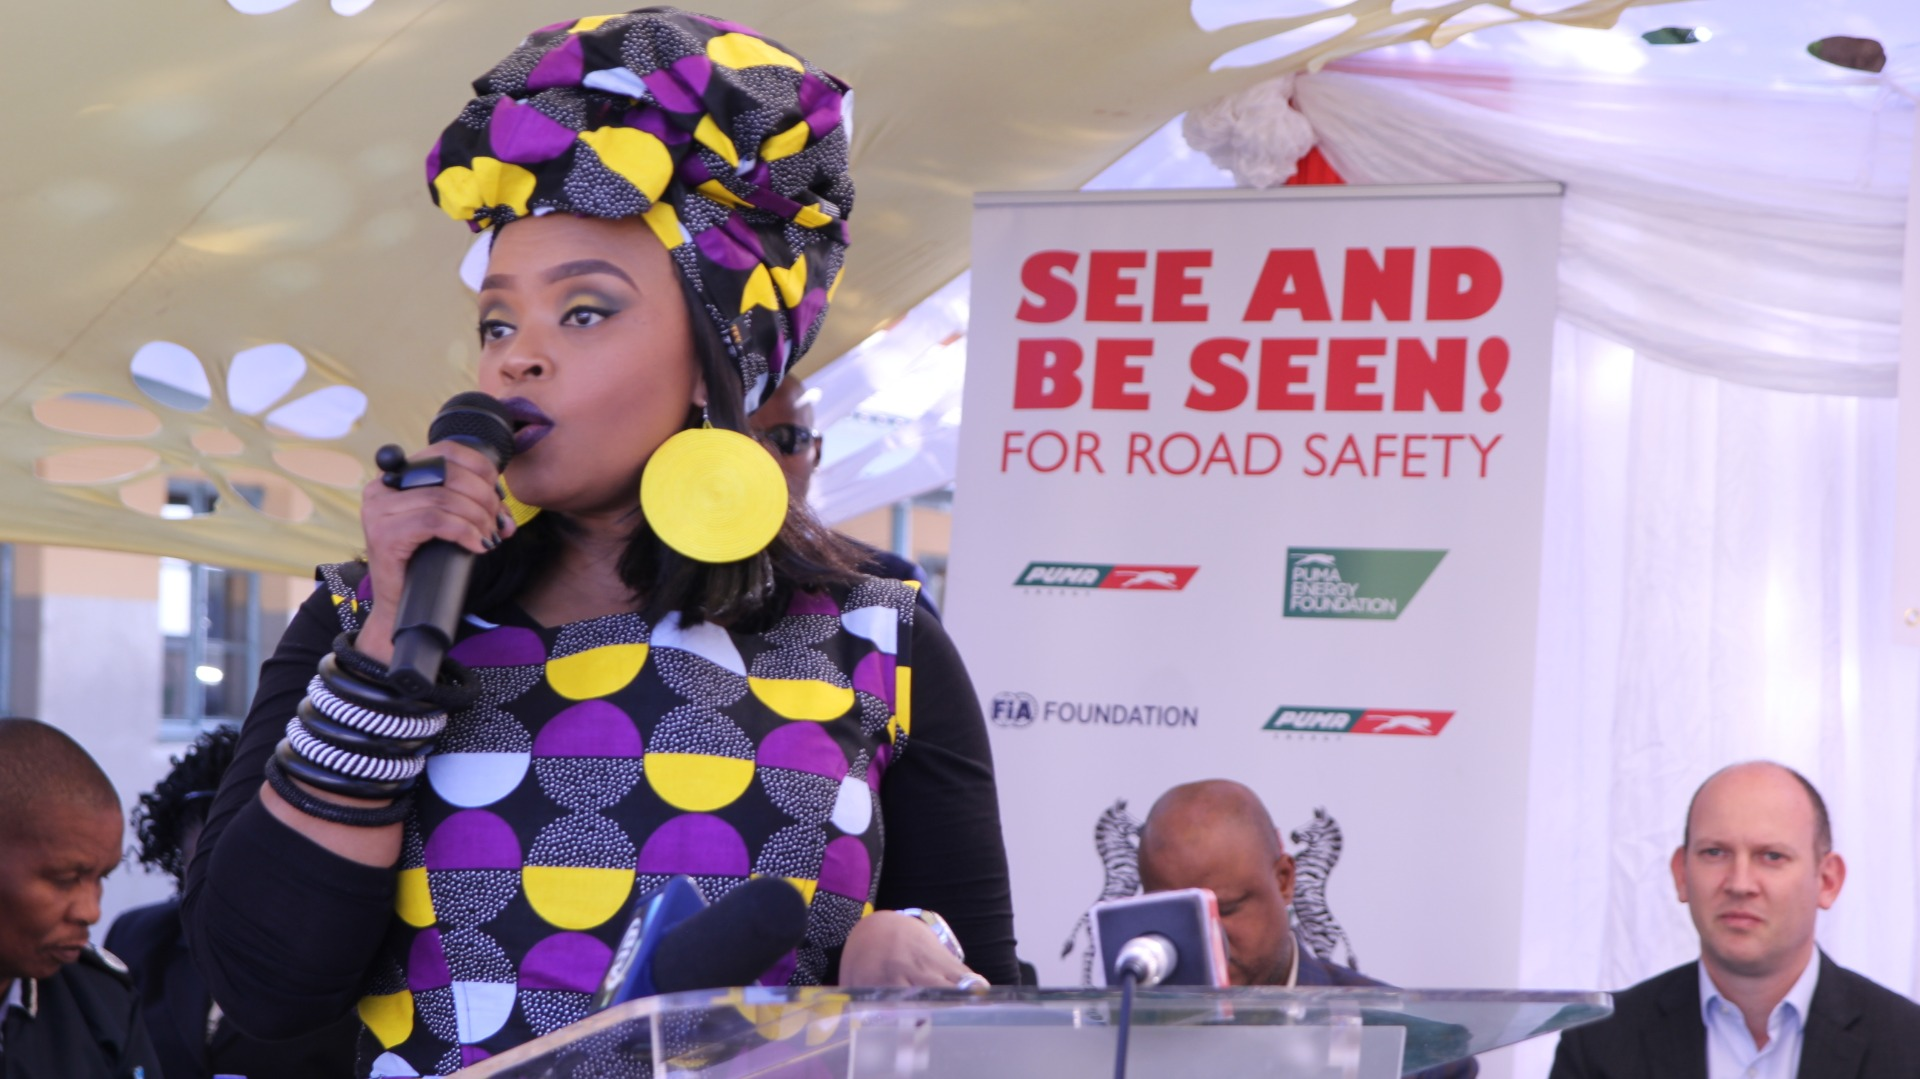 Child Health Initiative Global Ambassador Zoleka Mandela emphasised that initiatives such as this road safety programme should be given a priority as a solution for adolescent health.